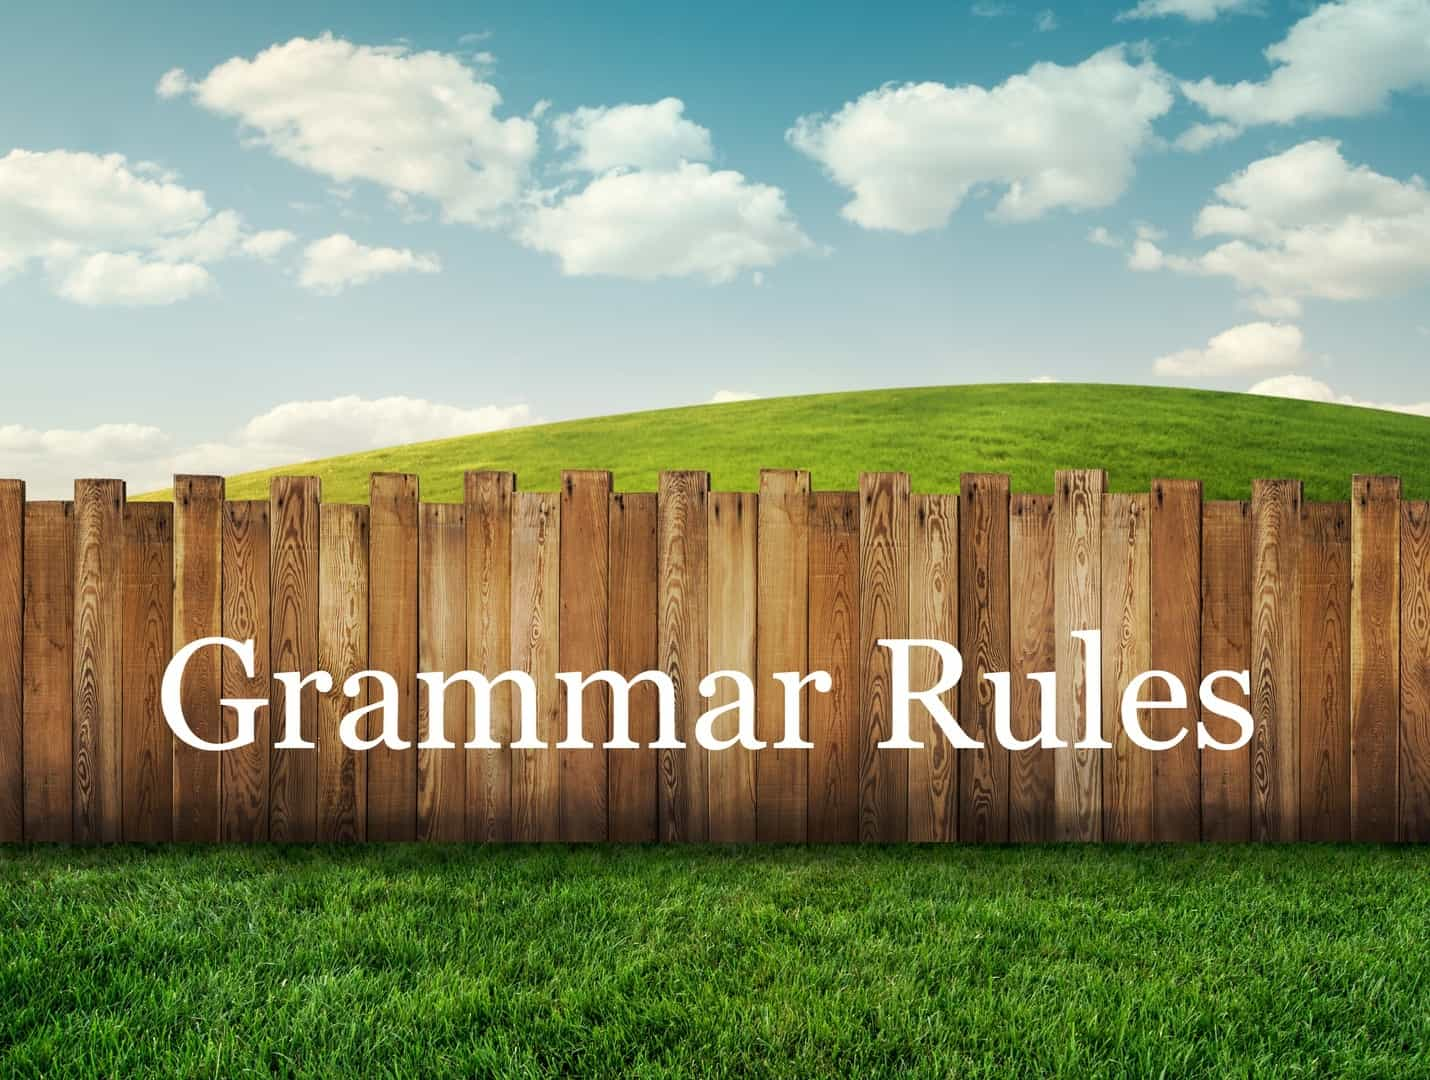 garden fence with grammar rules caption